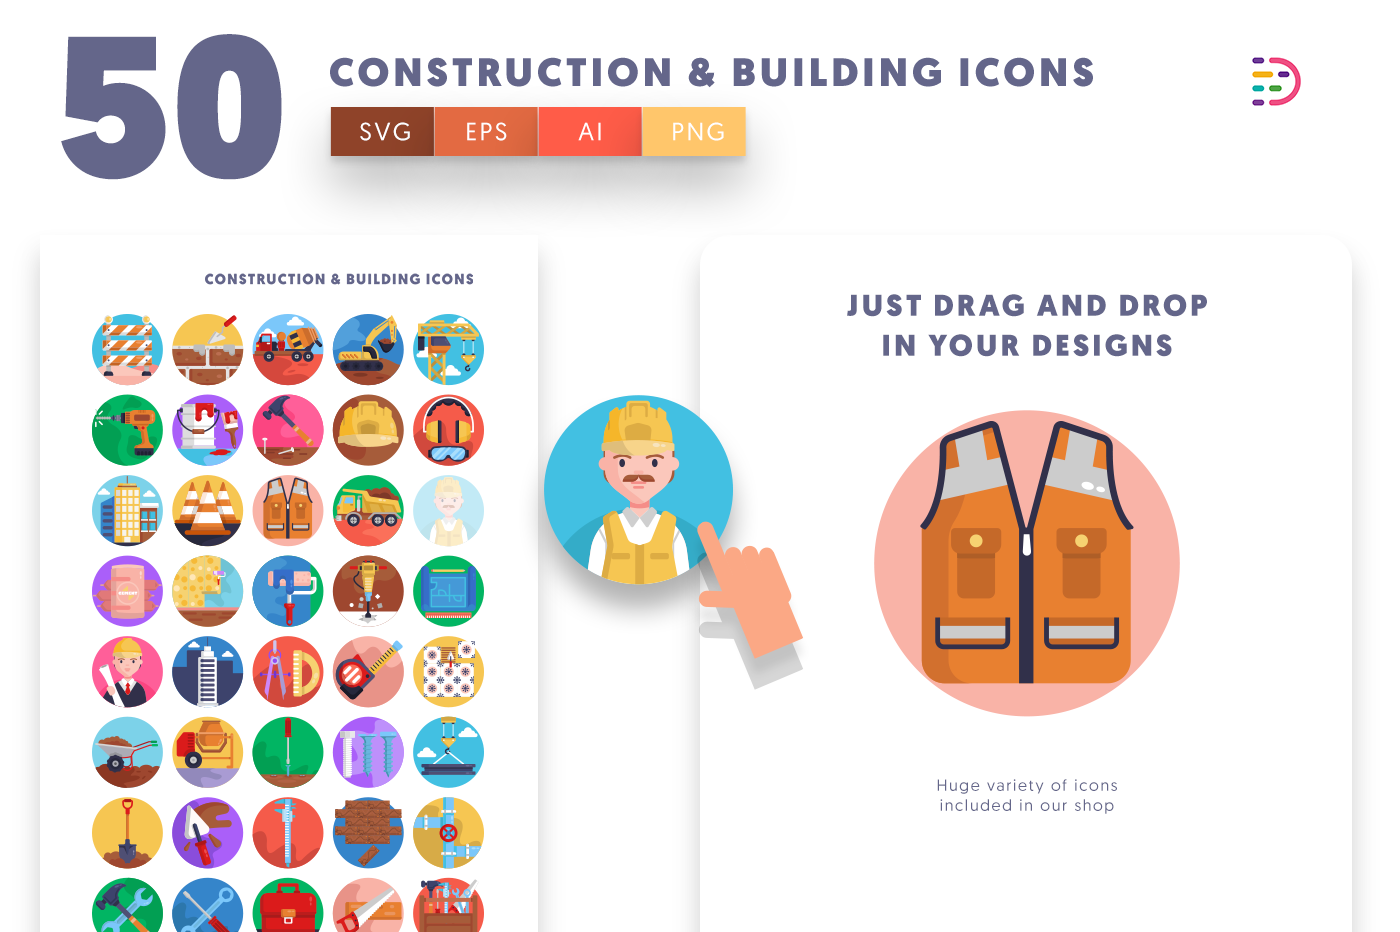 Drag and drop vector 50 Construction & Building Icons